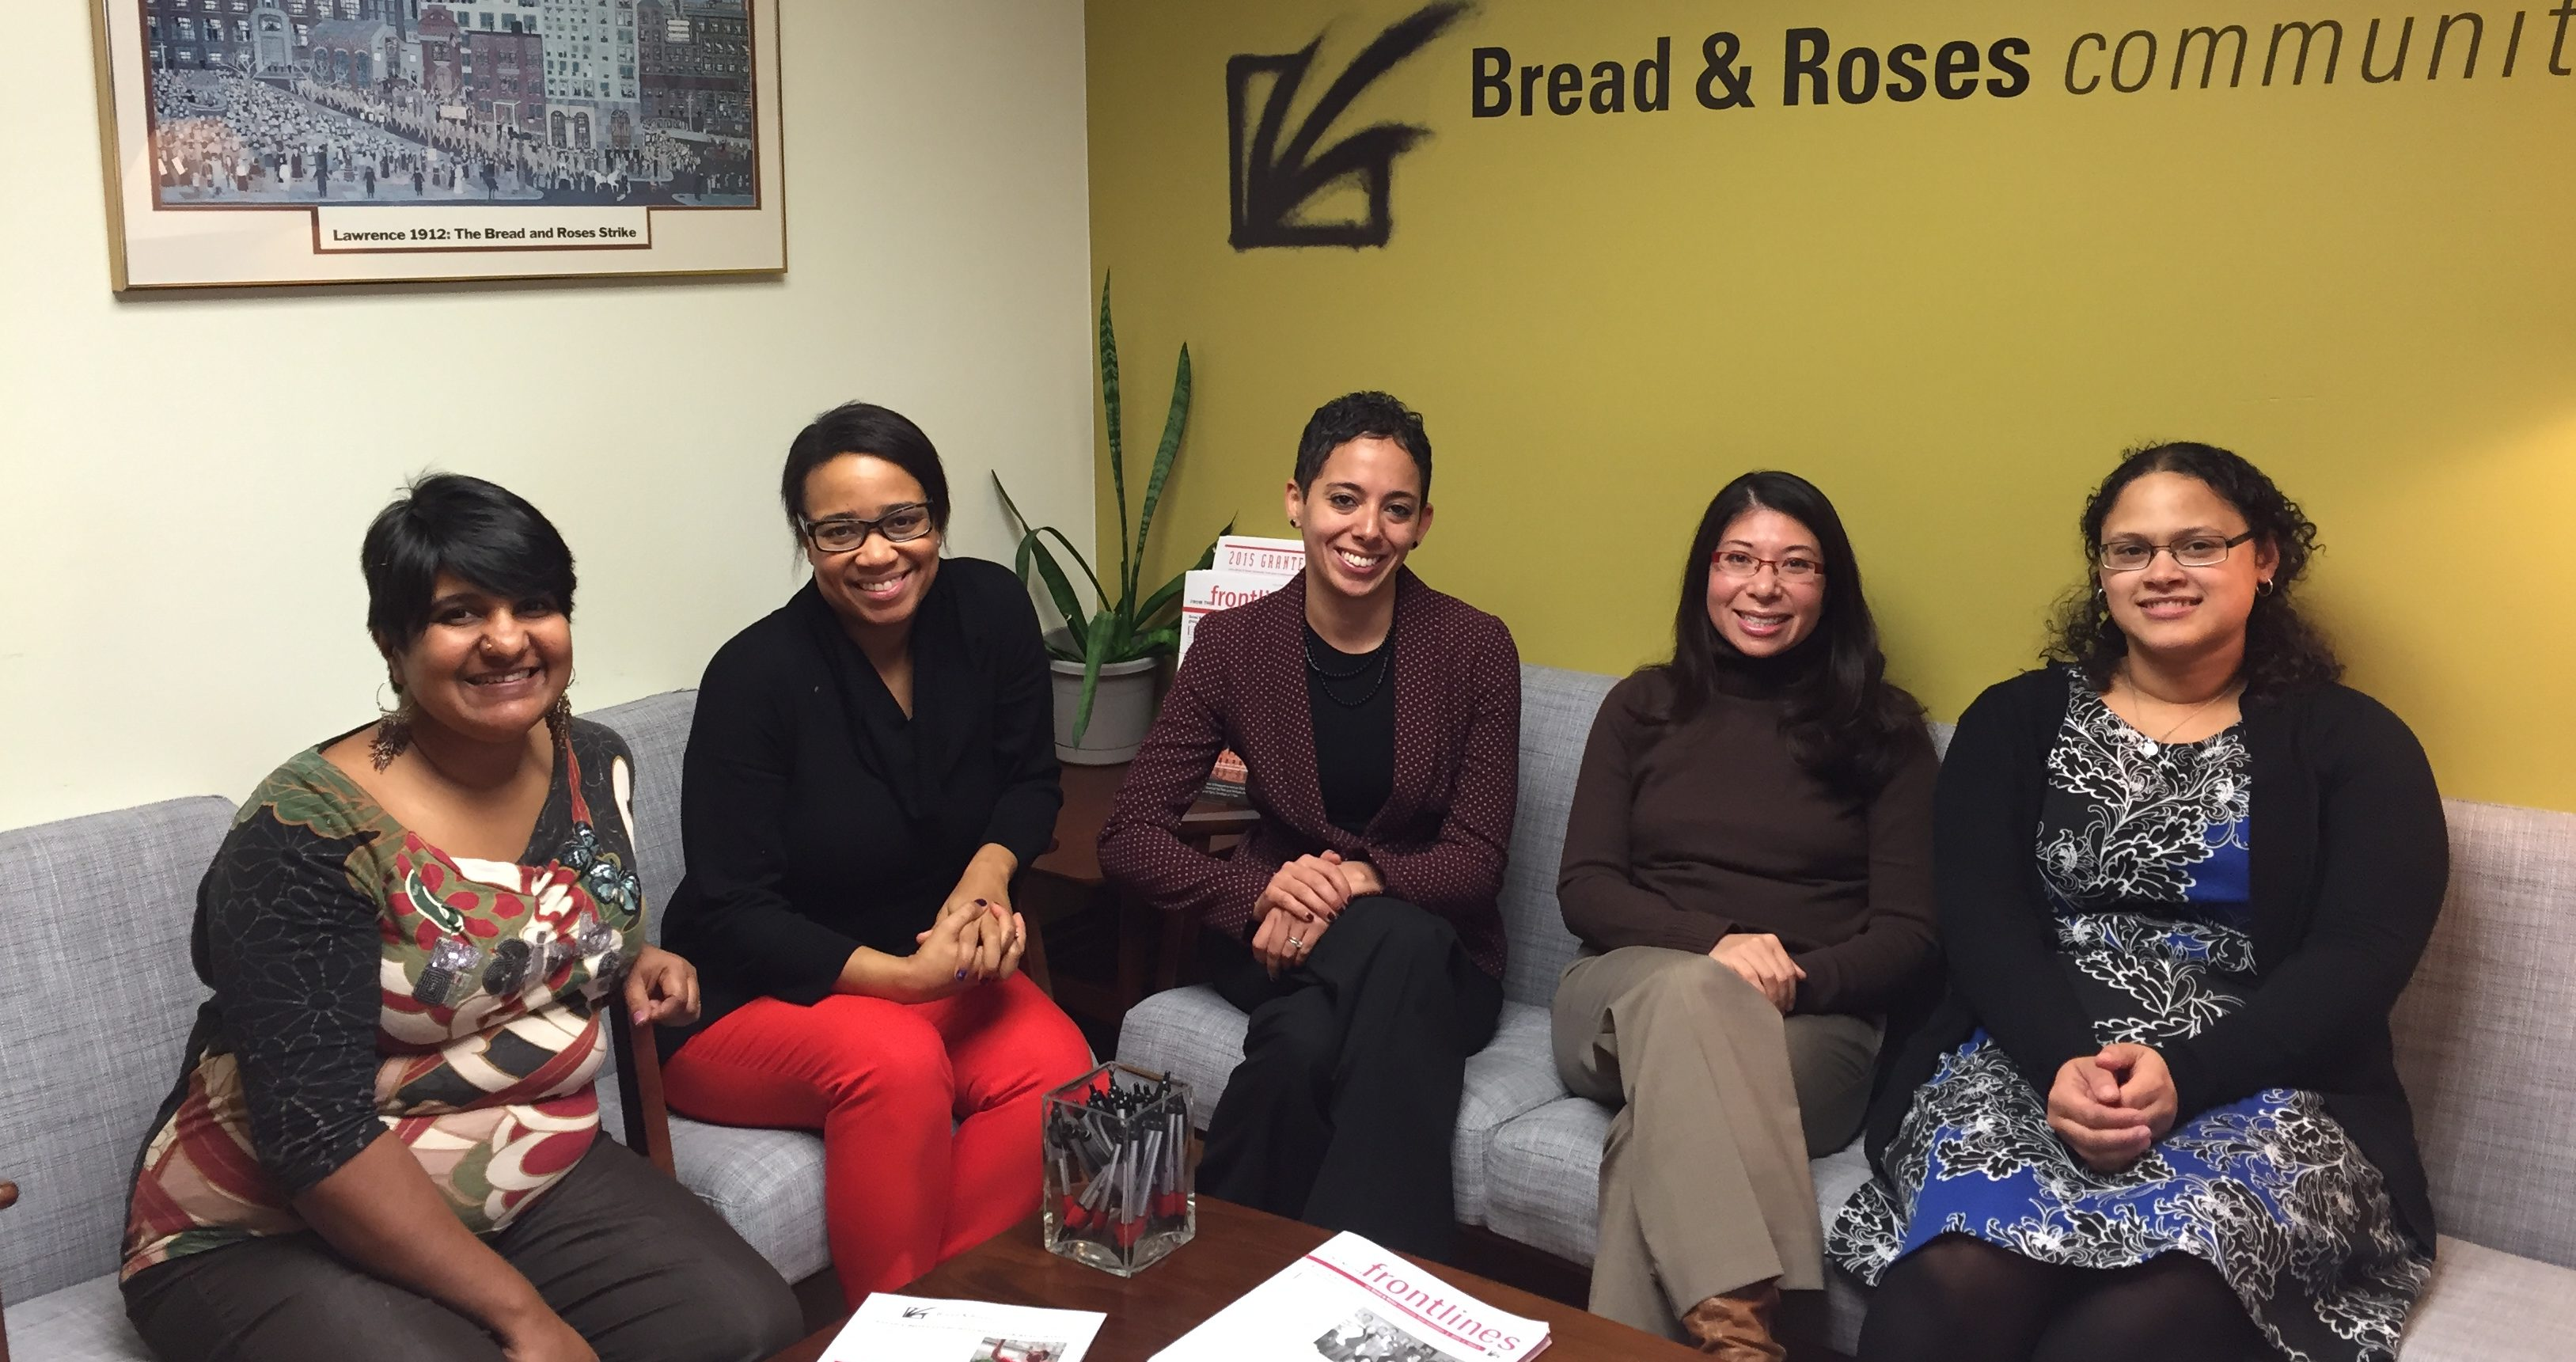 The 2015 Women of Equity pilot group pictured.